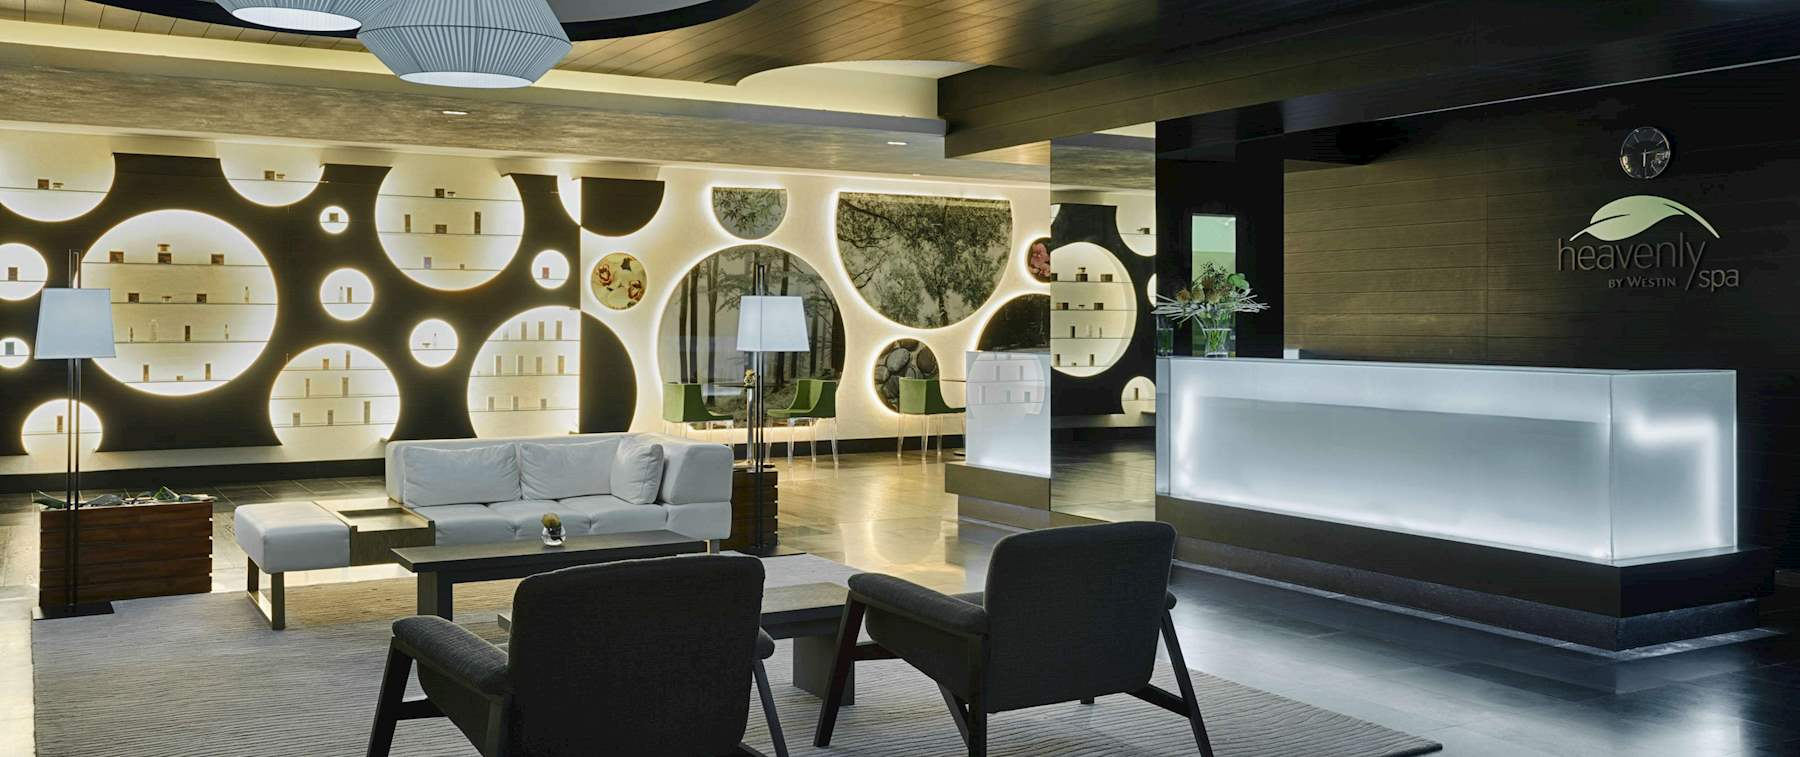 Contact Us Heavenly Spa by Westin